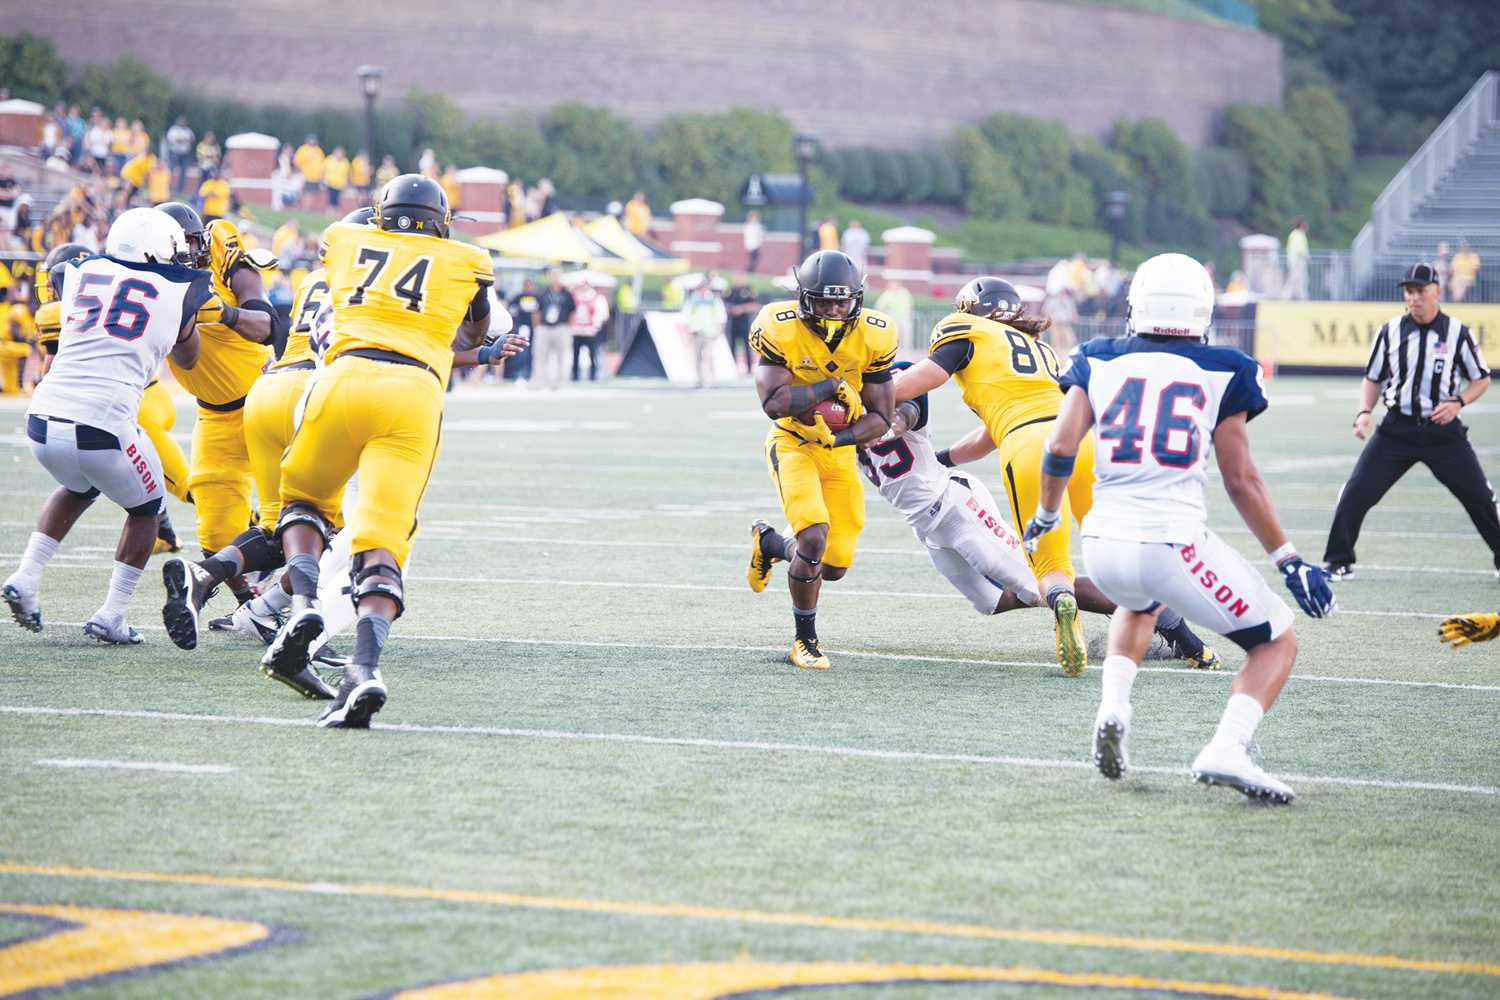 Offensive line spearheads strong running game